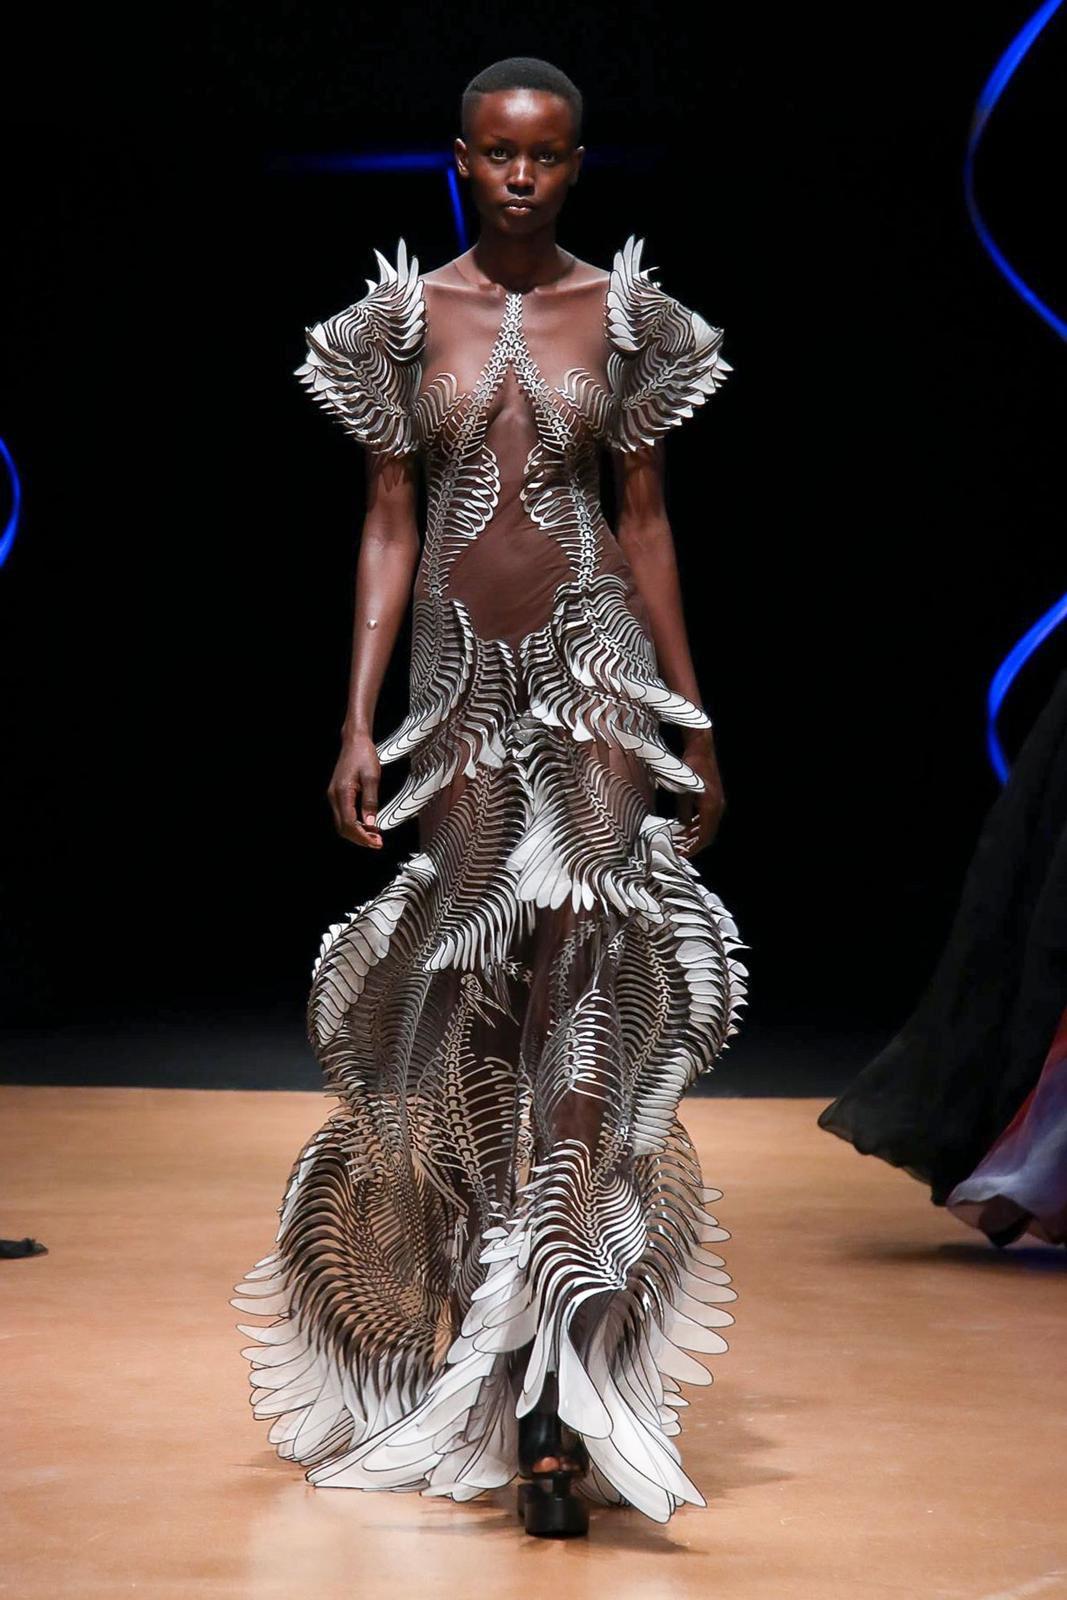 Irisvanherpen 's captivating wearable designs at the Paris Fashion Week.  #irisvanherpen #parisfashionweek #paris #france #fashion #fashiondesign #fashiondesigner #fashionshow #wearables #wearableart #wearable #3dprint #3dprinting #3dprinted #artist #designer https://t.co/6GIyRpHqzw